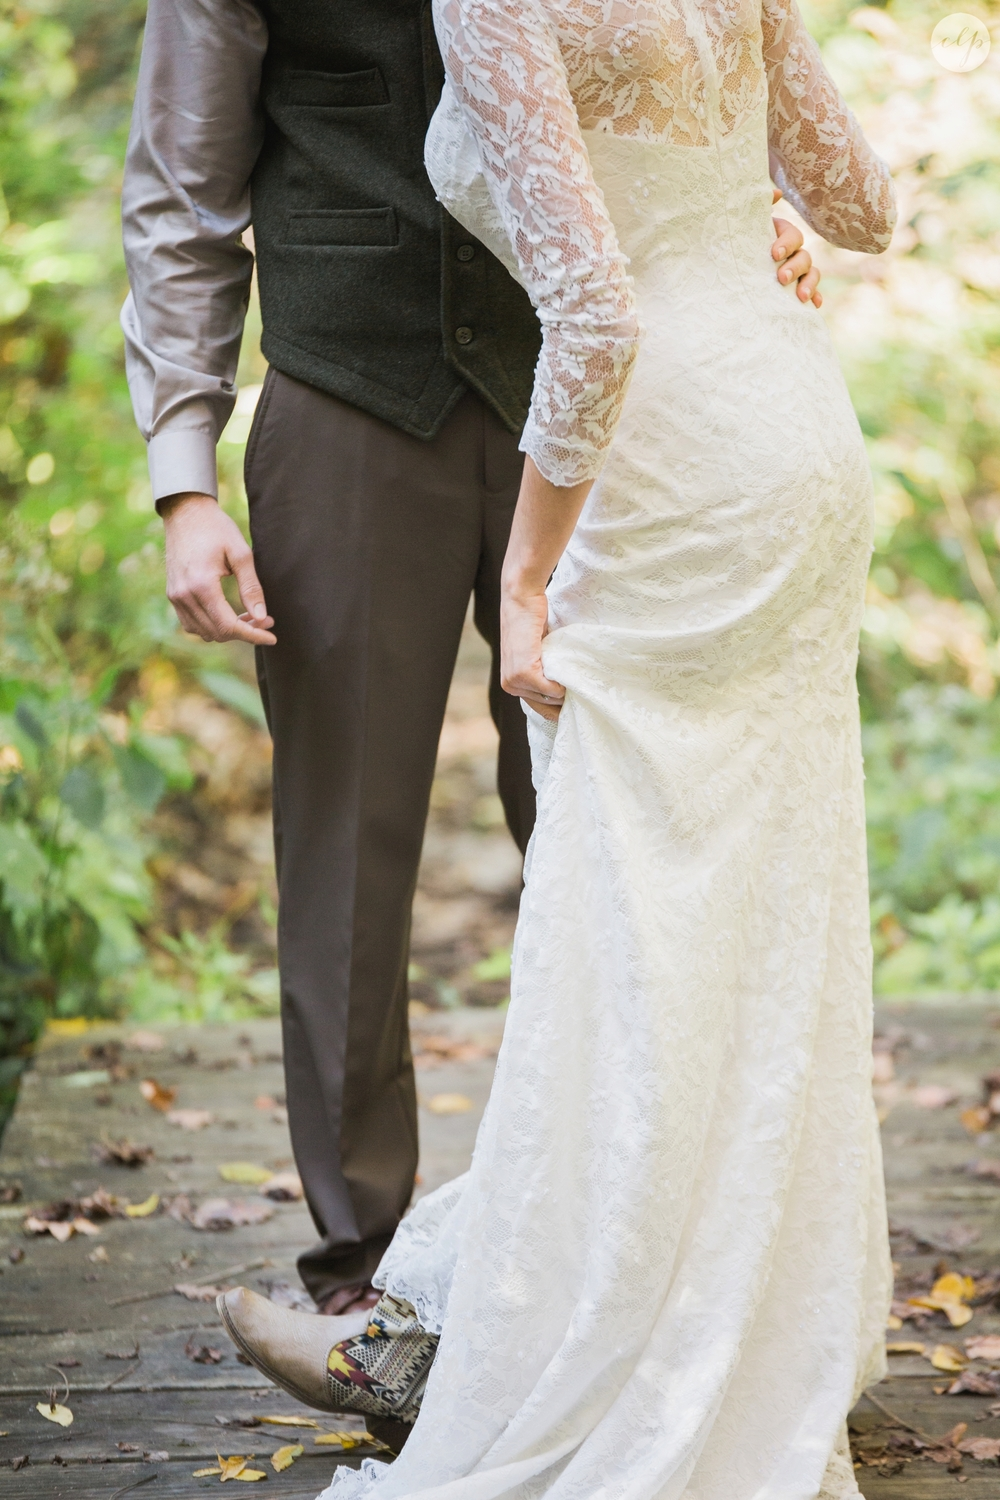 Outdoor-Wedding-in-the-Woods-Photography_4206.jpg